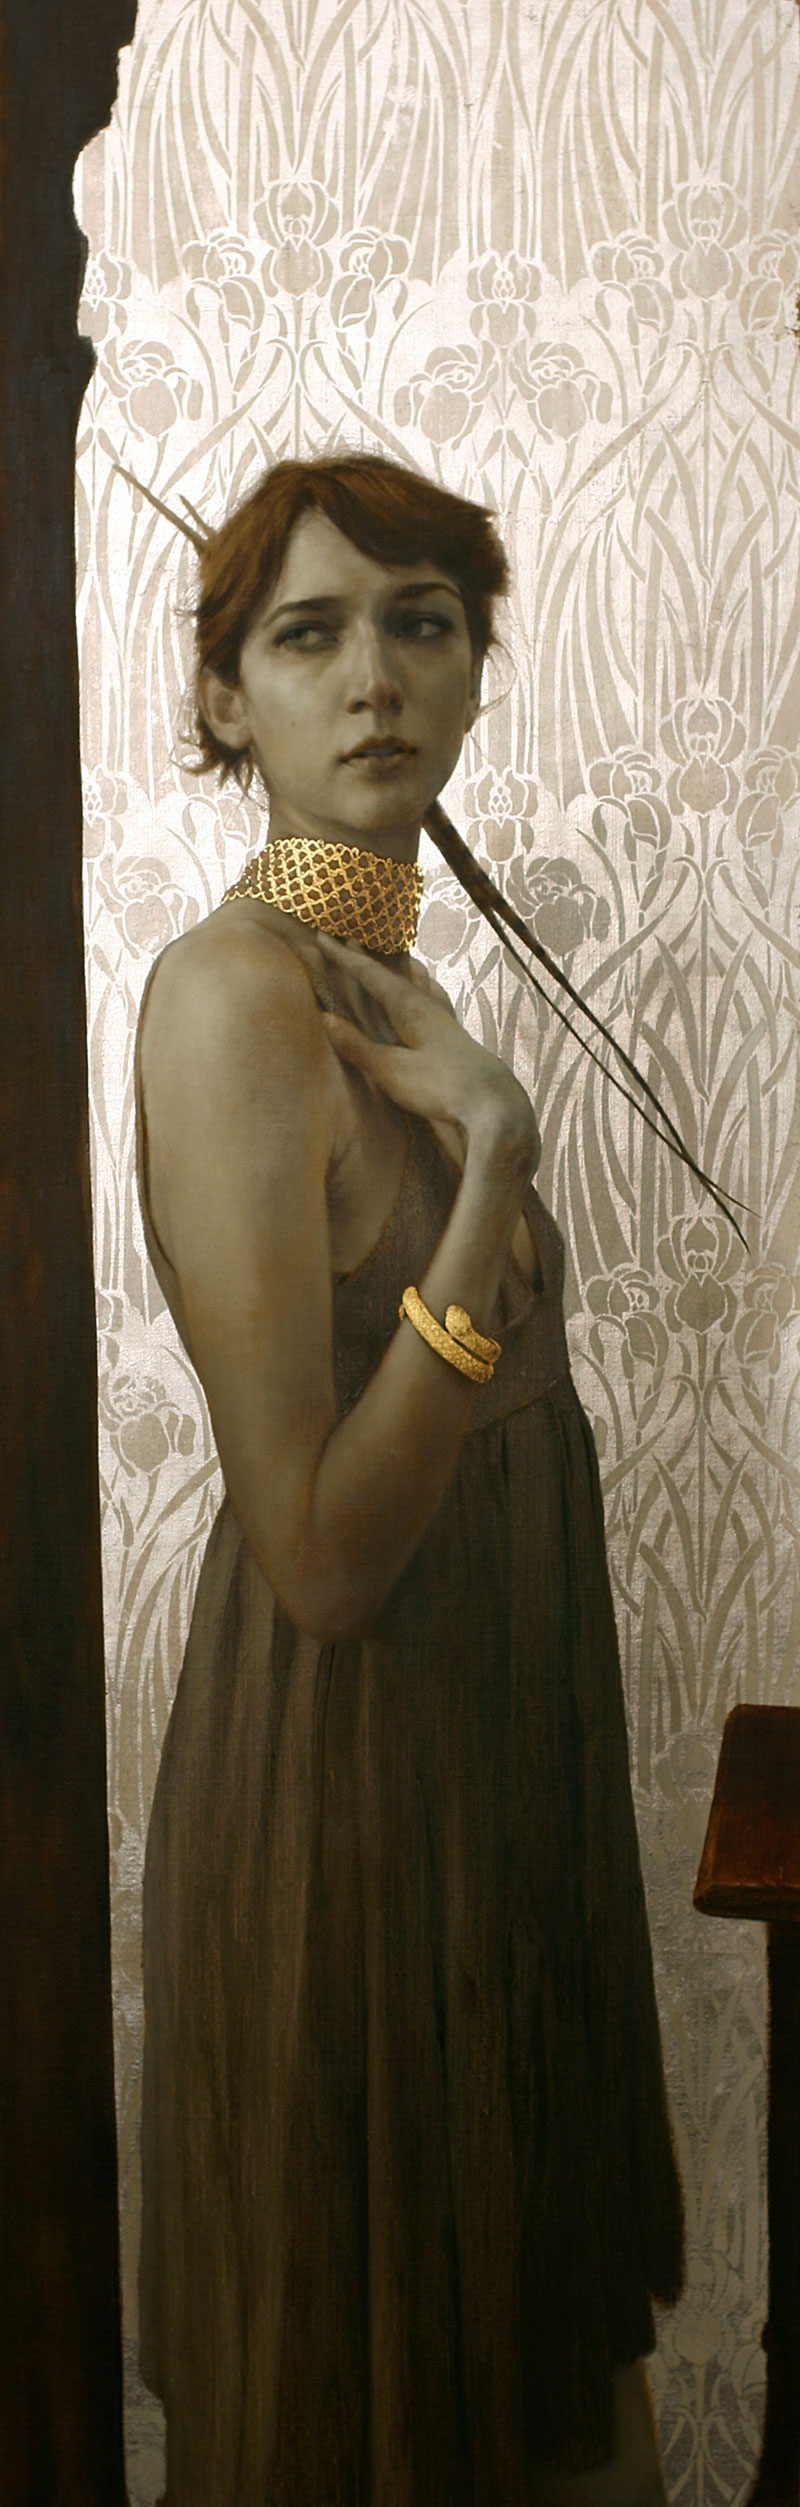 The Gold Choker.  64 x 21 inches. Oil, gold and silver leaf on linen. Private collection.